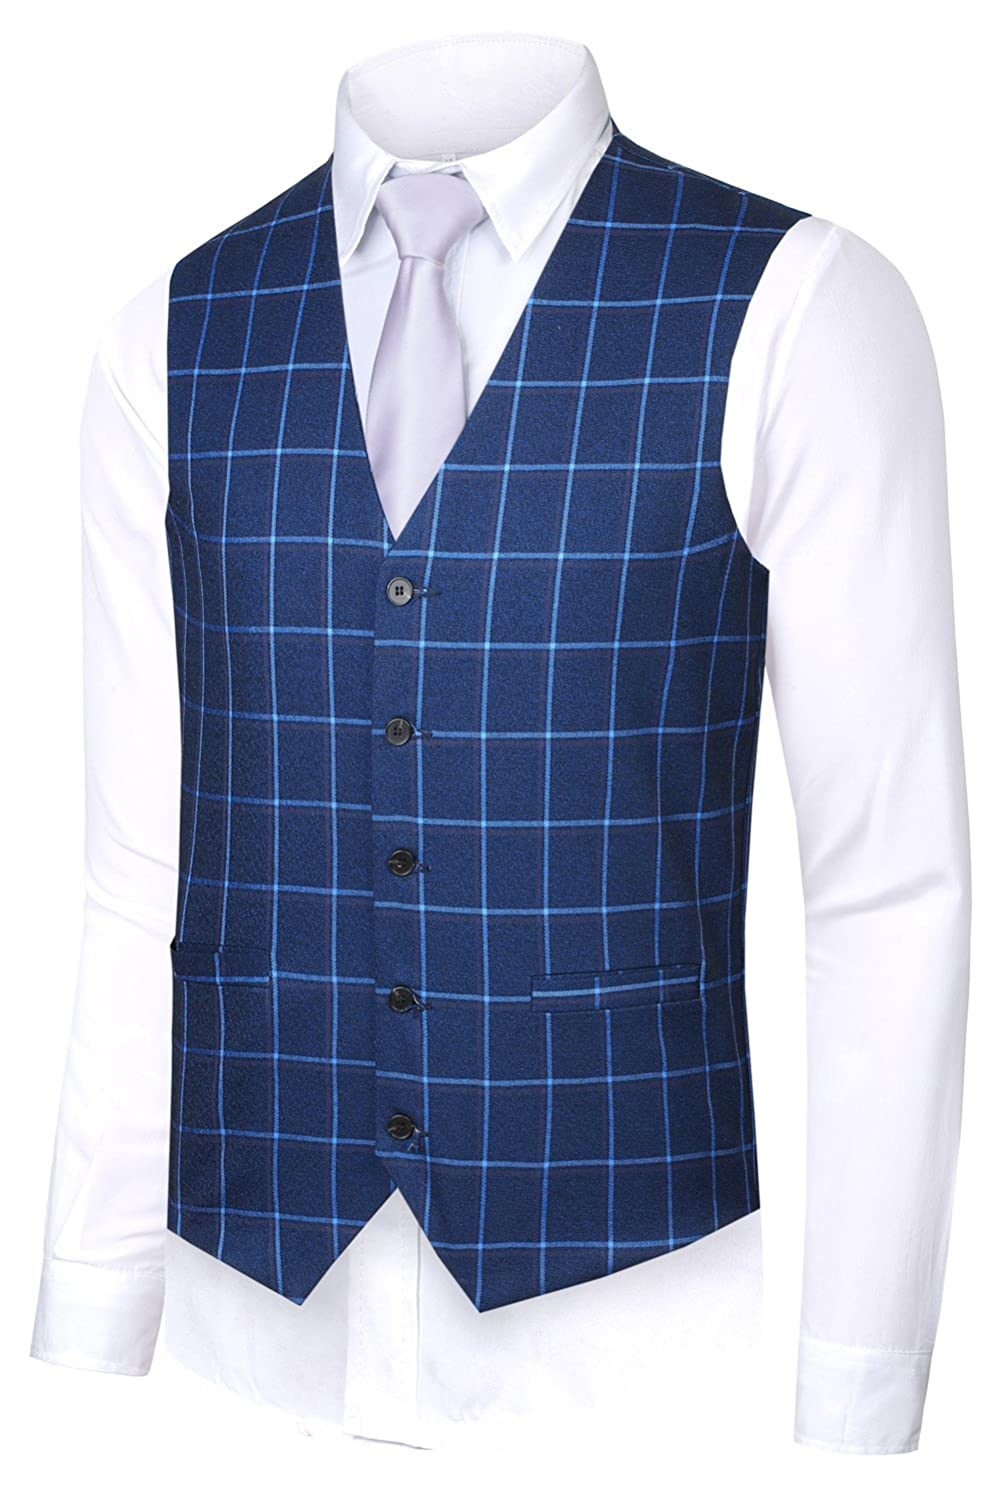 Hanayome Men's British Style Leisure Business Suit Dress Vest Waistcoat VS08